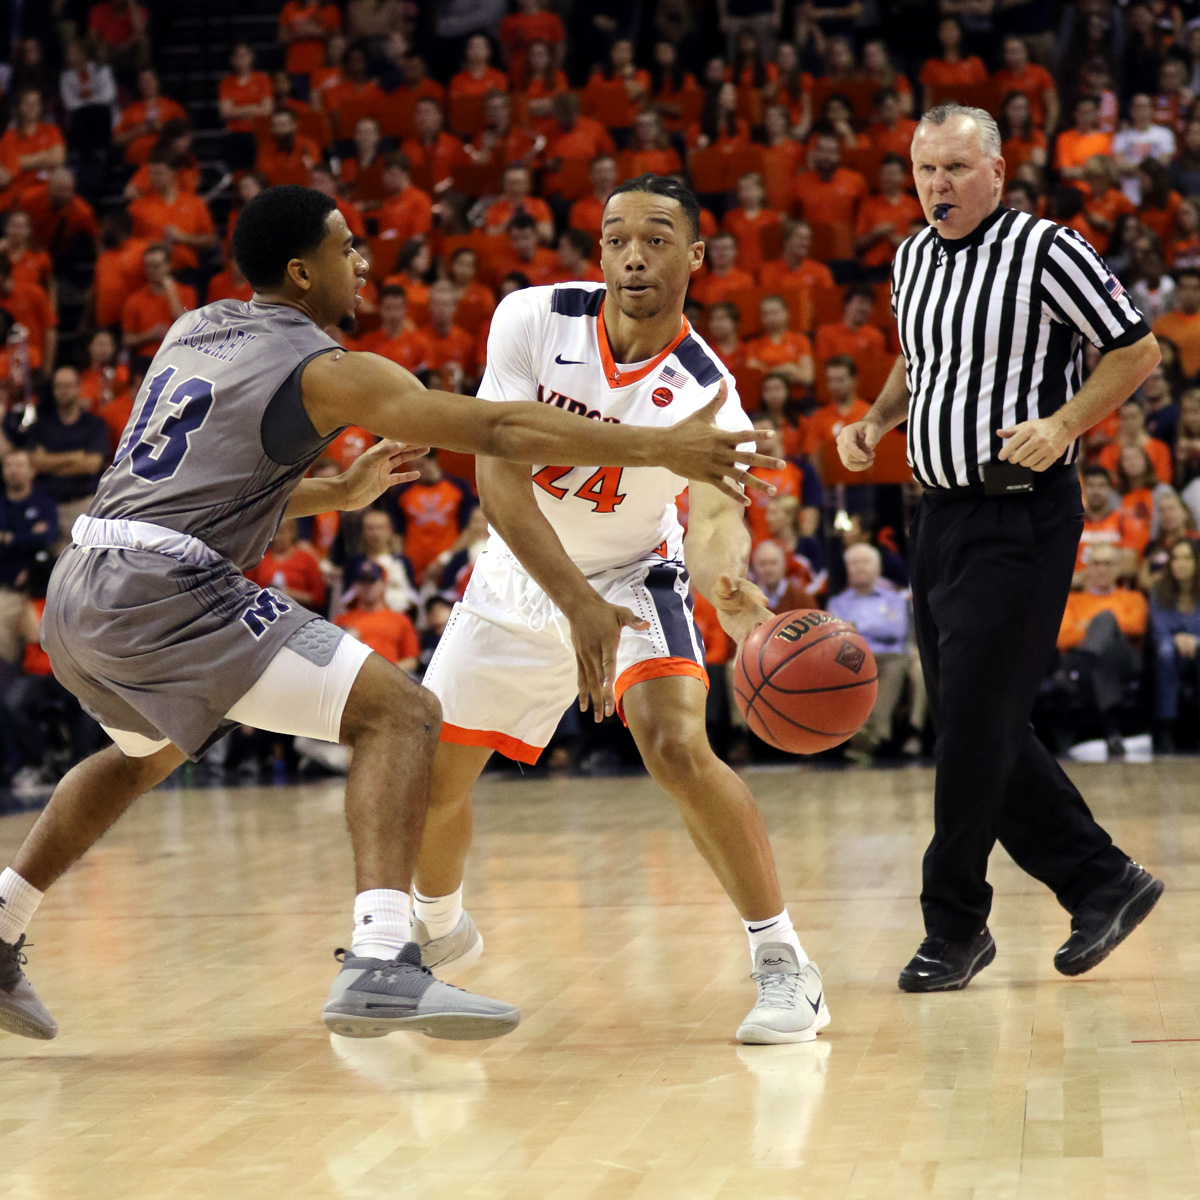 Marco Anthony is a freshman with the Virginia basketball team.